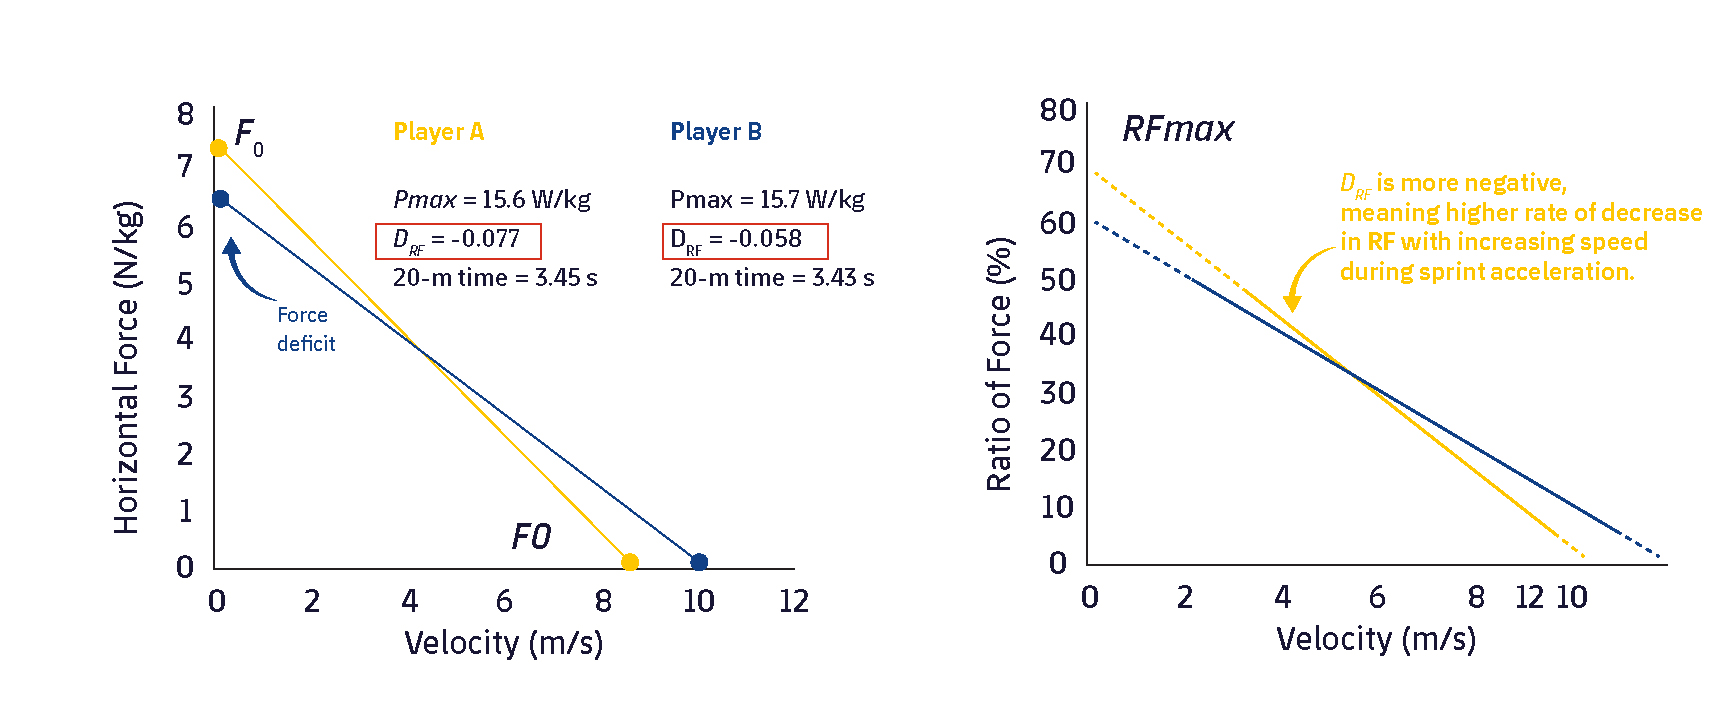 Figure 2. Horizontal SSP profiles of 2 elite rugby players obtained from maximum sprints of 30 m. Adapted from Morin and Samozino, 2016.4